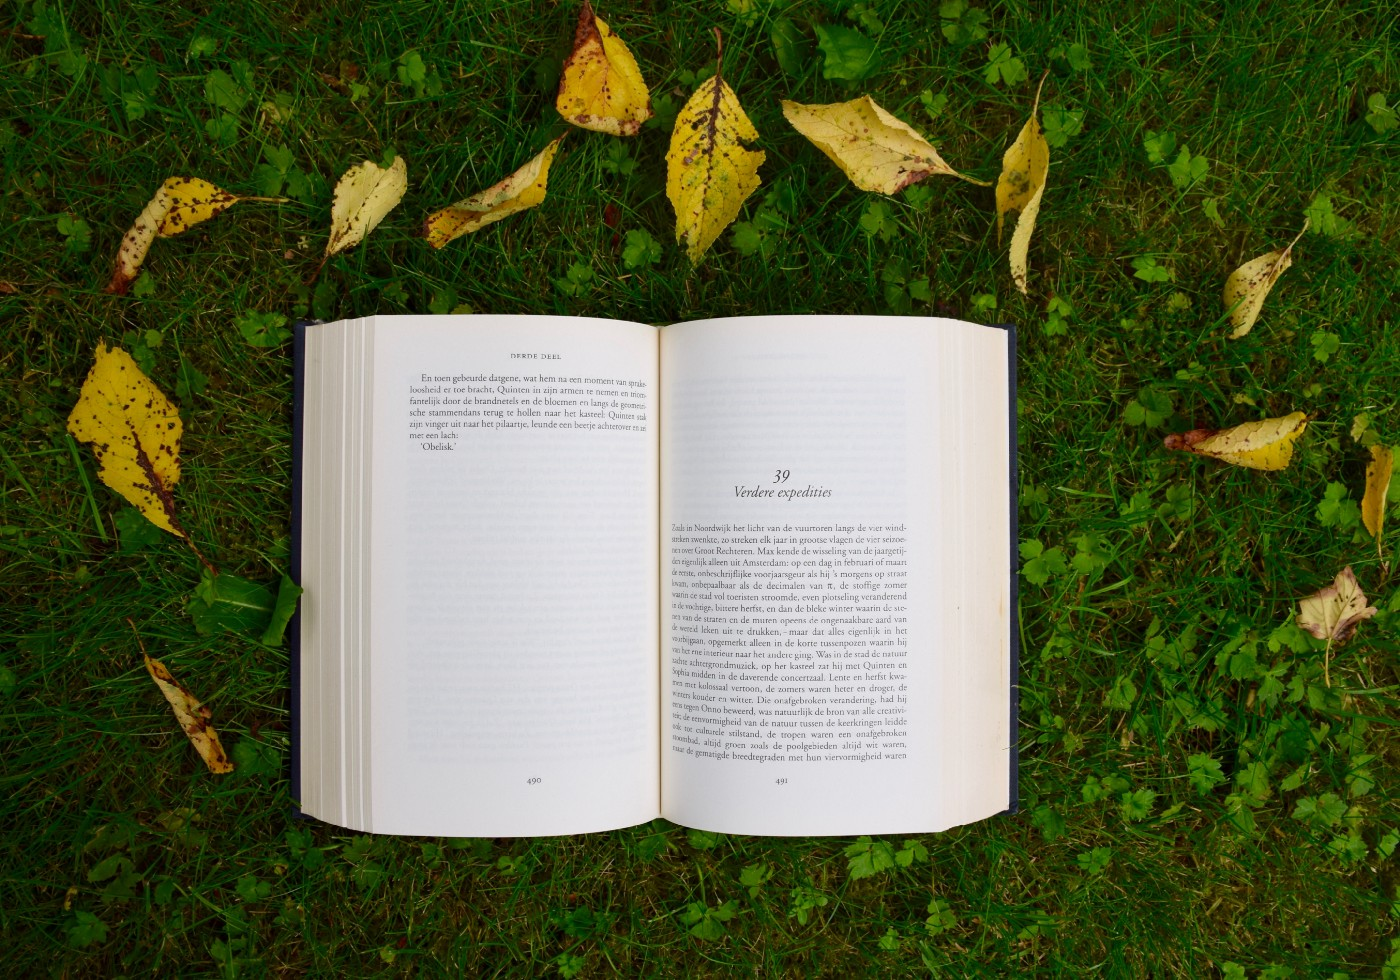 Open paperback book over grass and leaves.